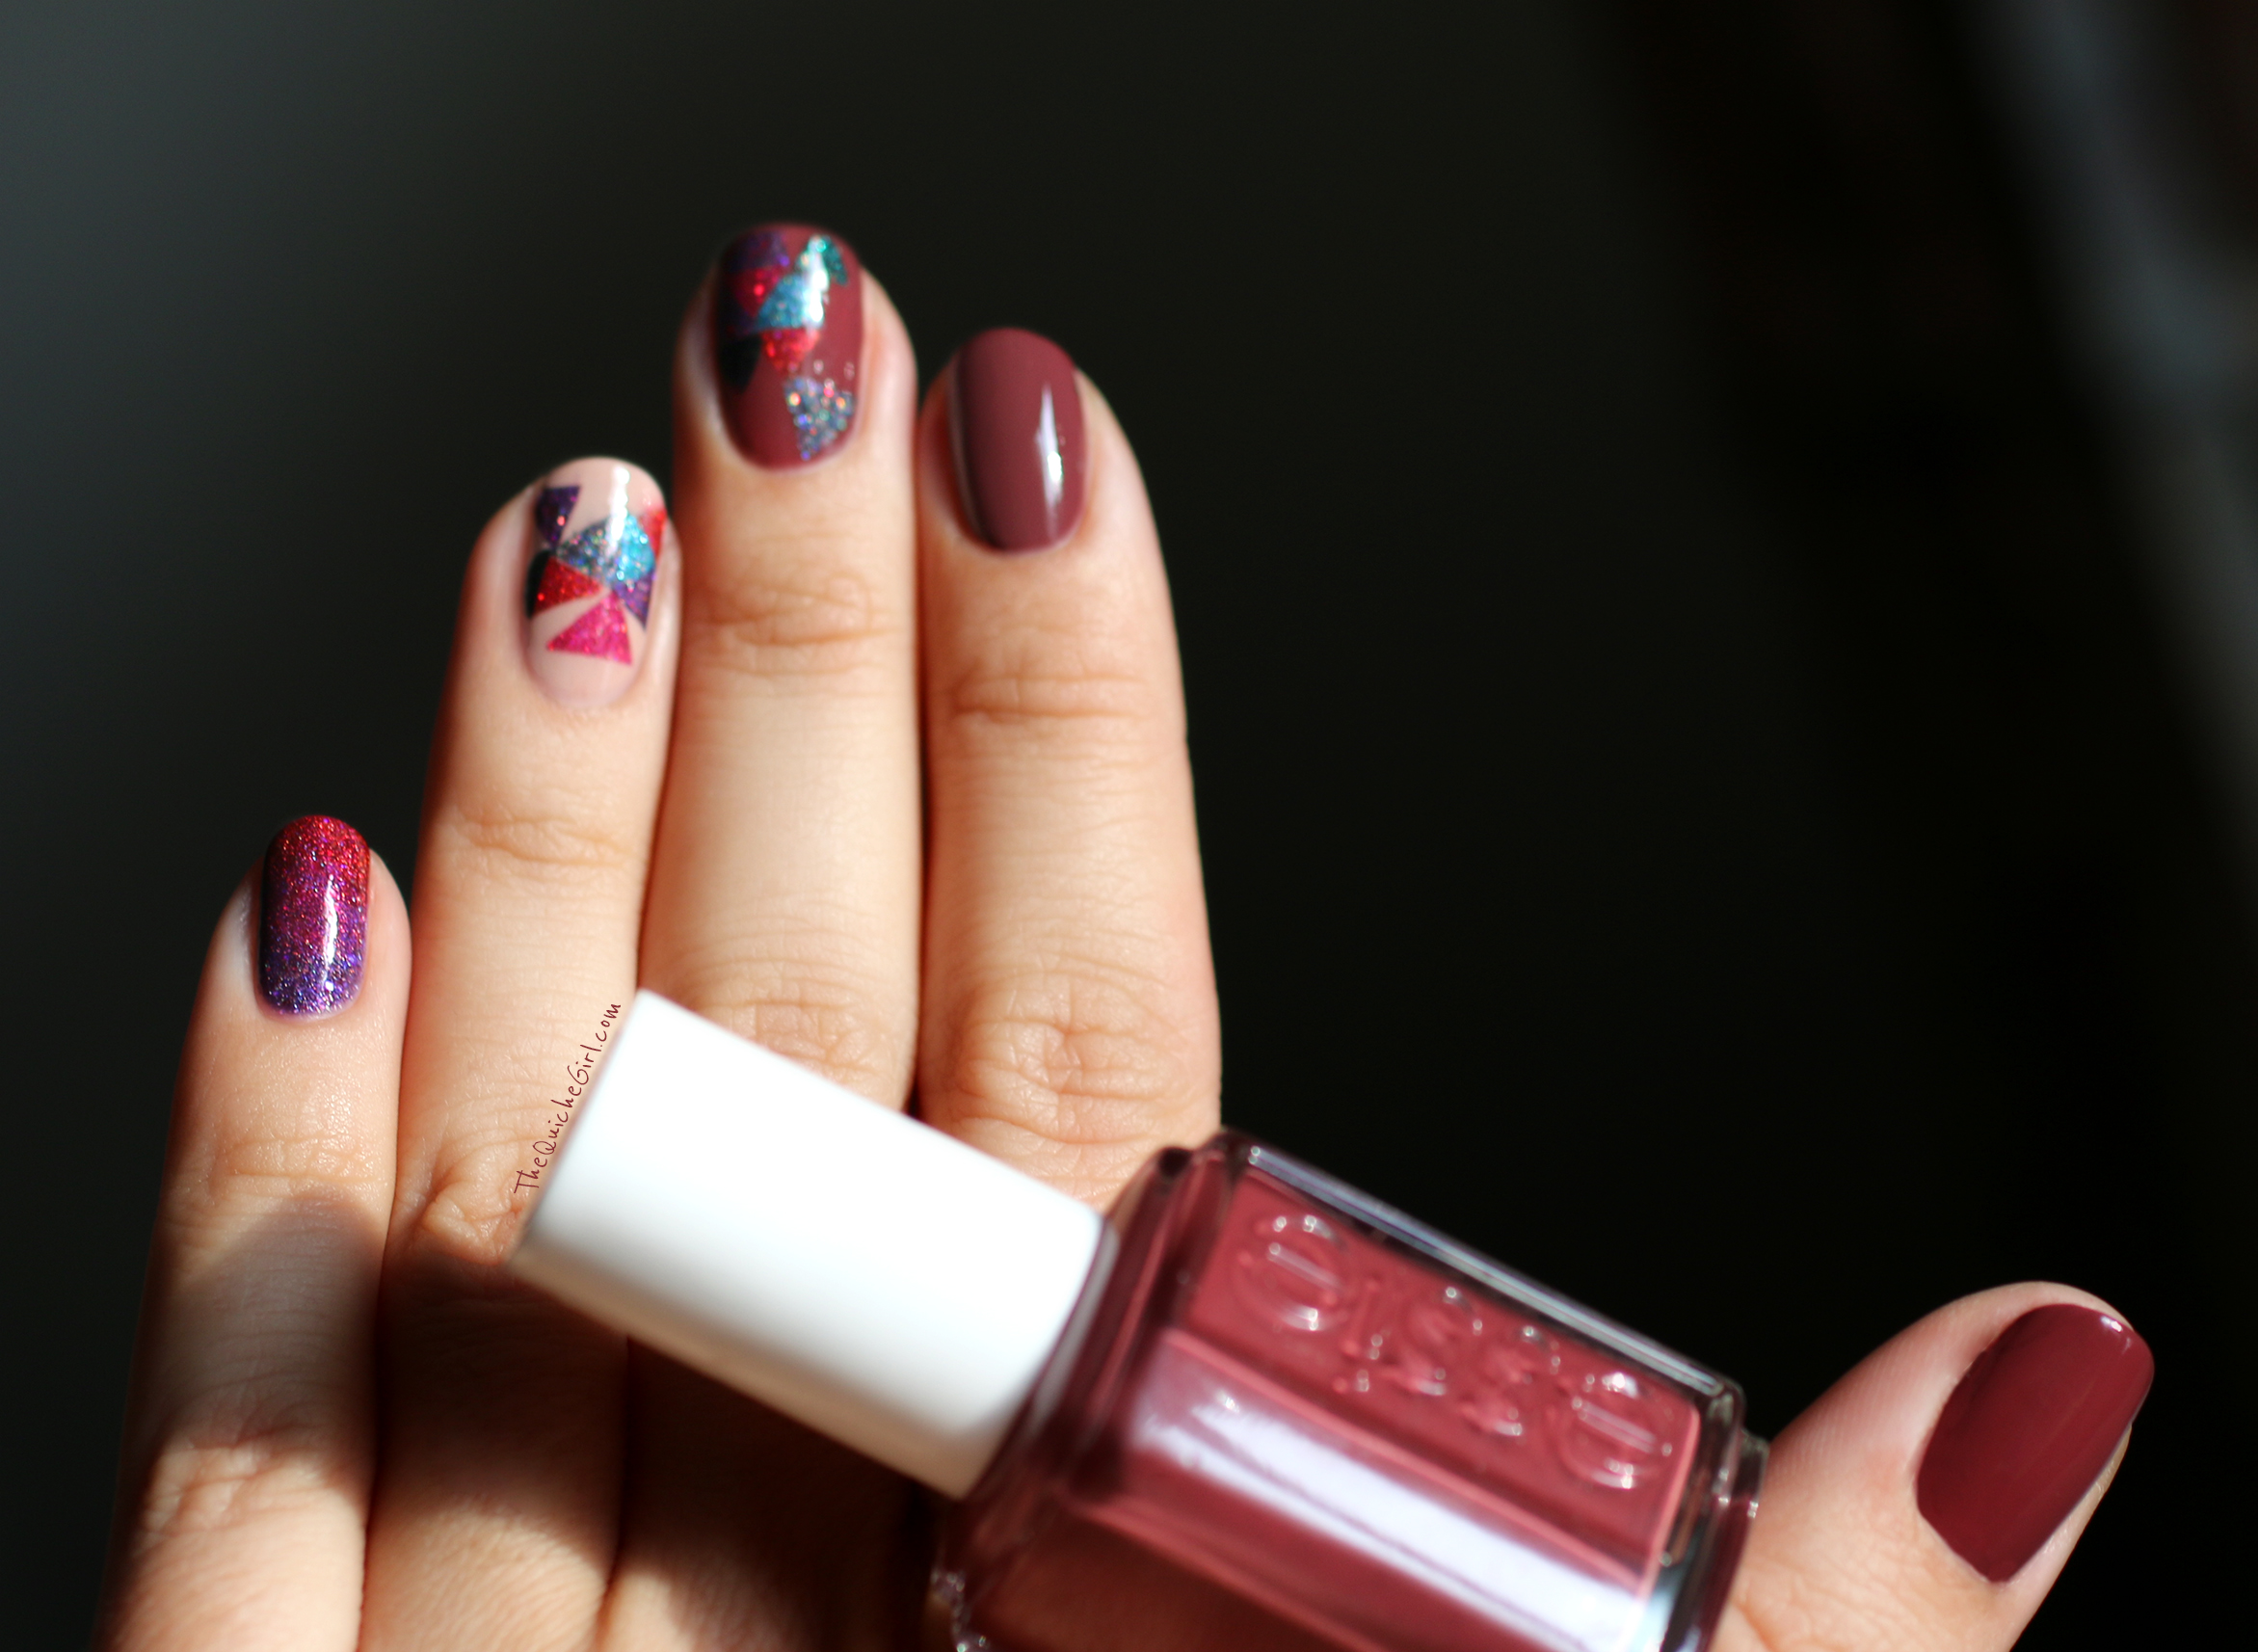 Marsala, Triangles, Glam polish, angora cardi, Essie,spin in the bottle, QuicheGirl